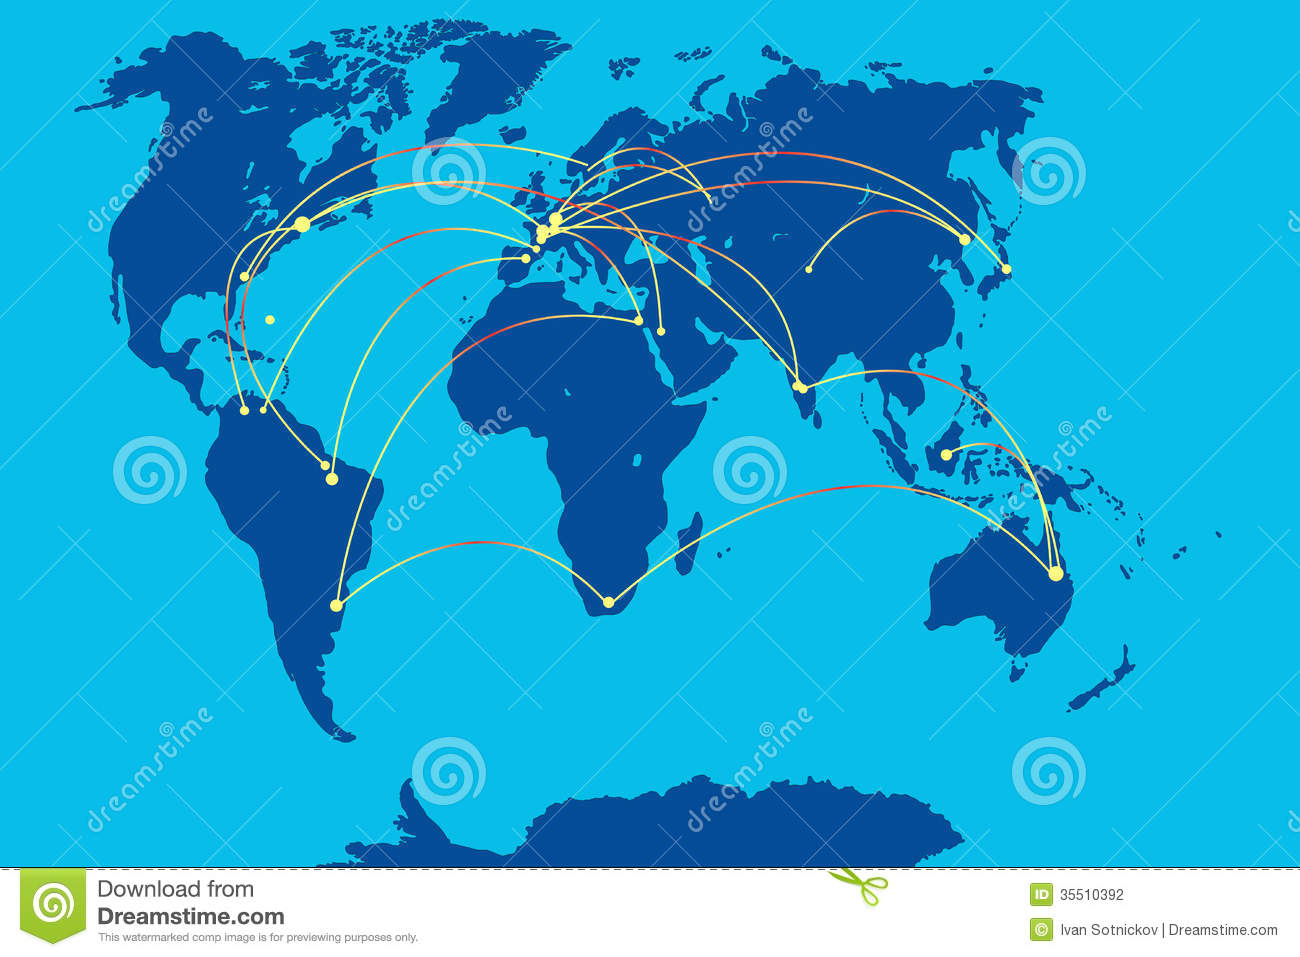 Mobile connection on map of world stock vector illustration of mobile connection on map of world gumiabroncs Images